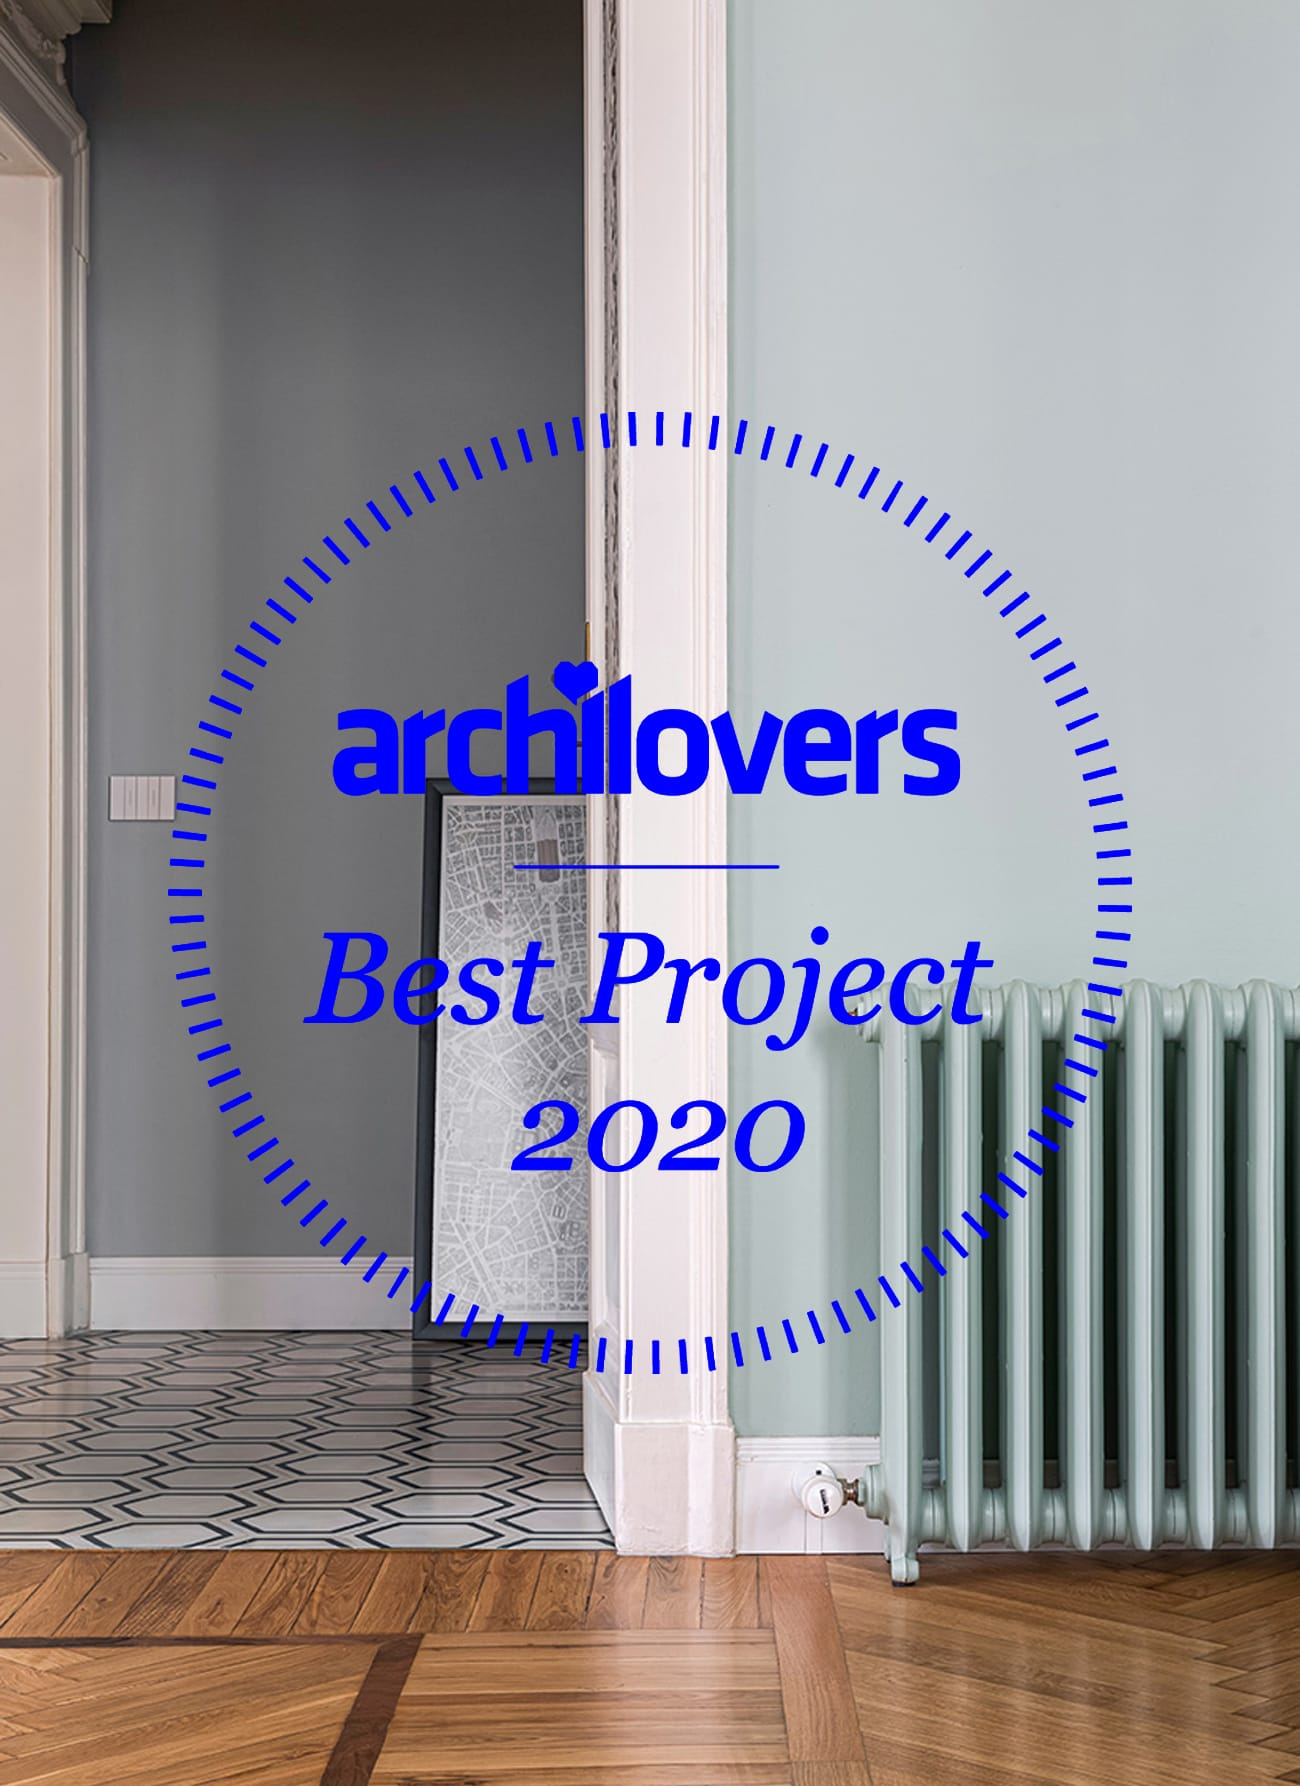 journal_archilovers2020_3